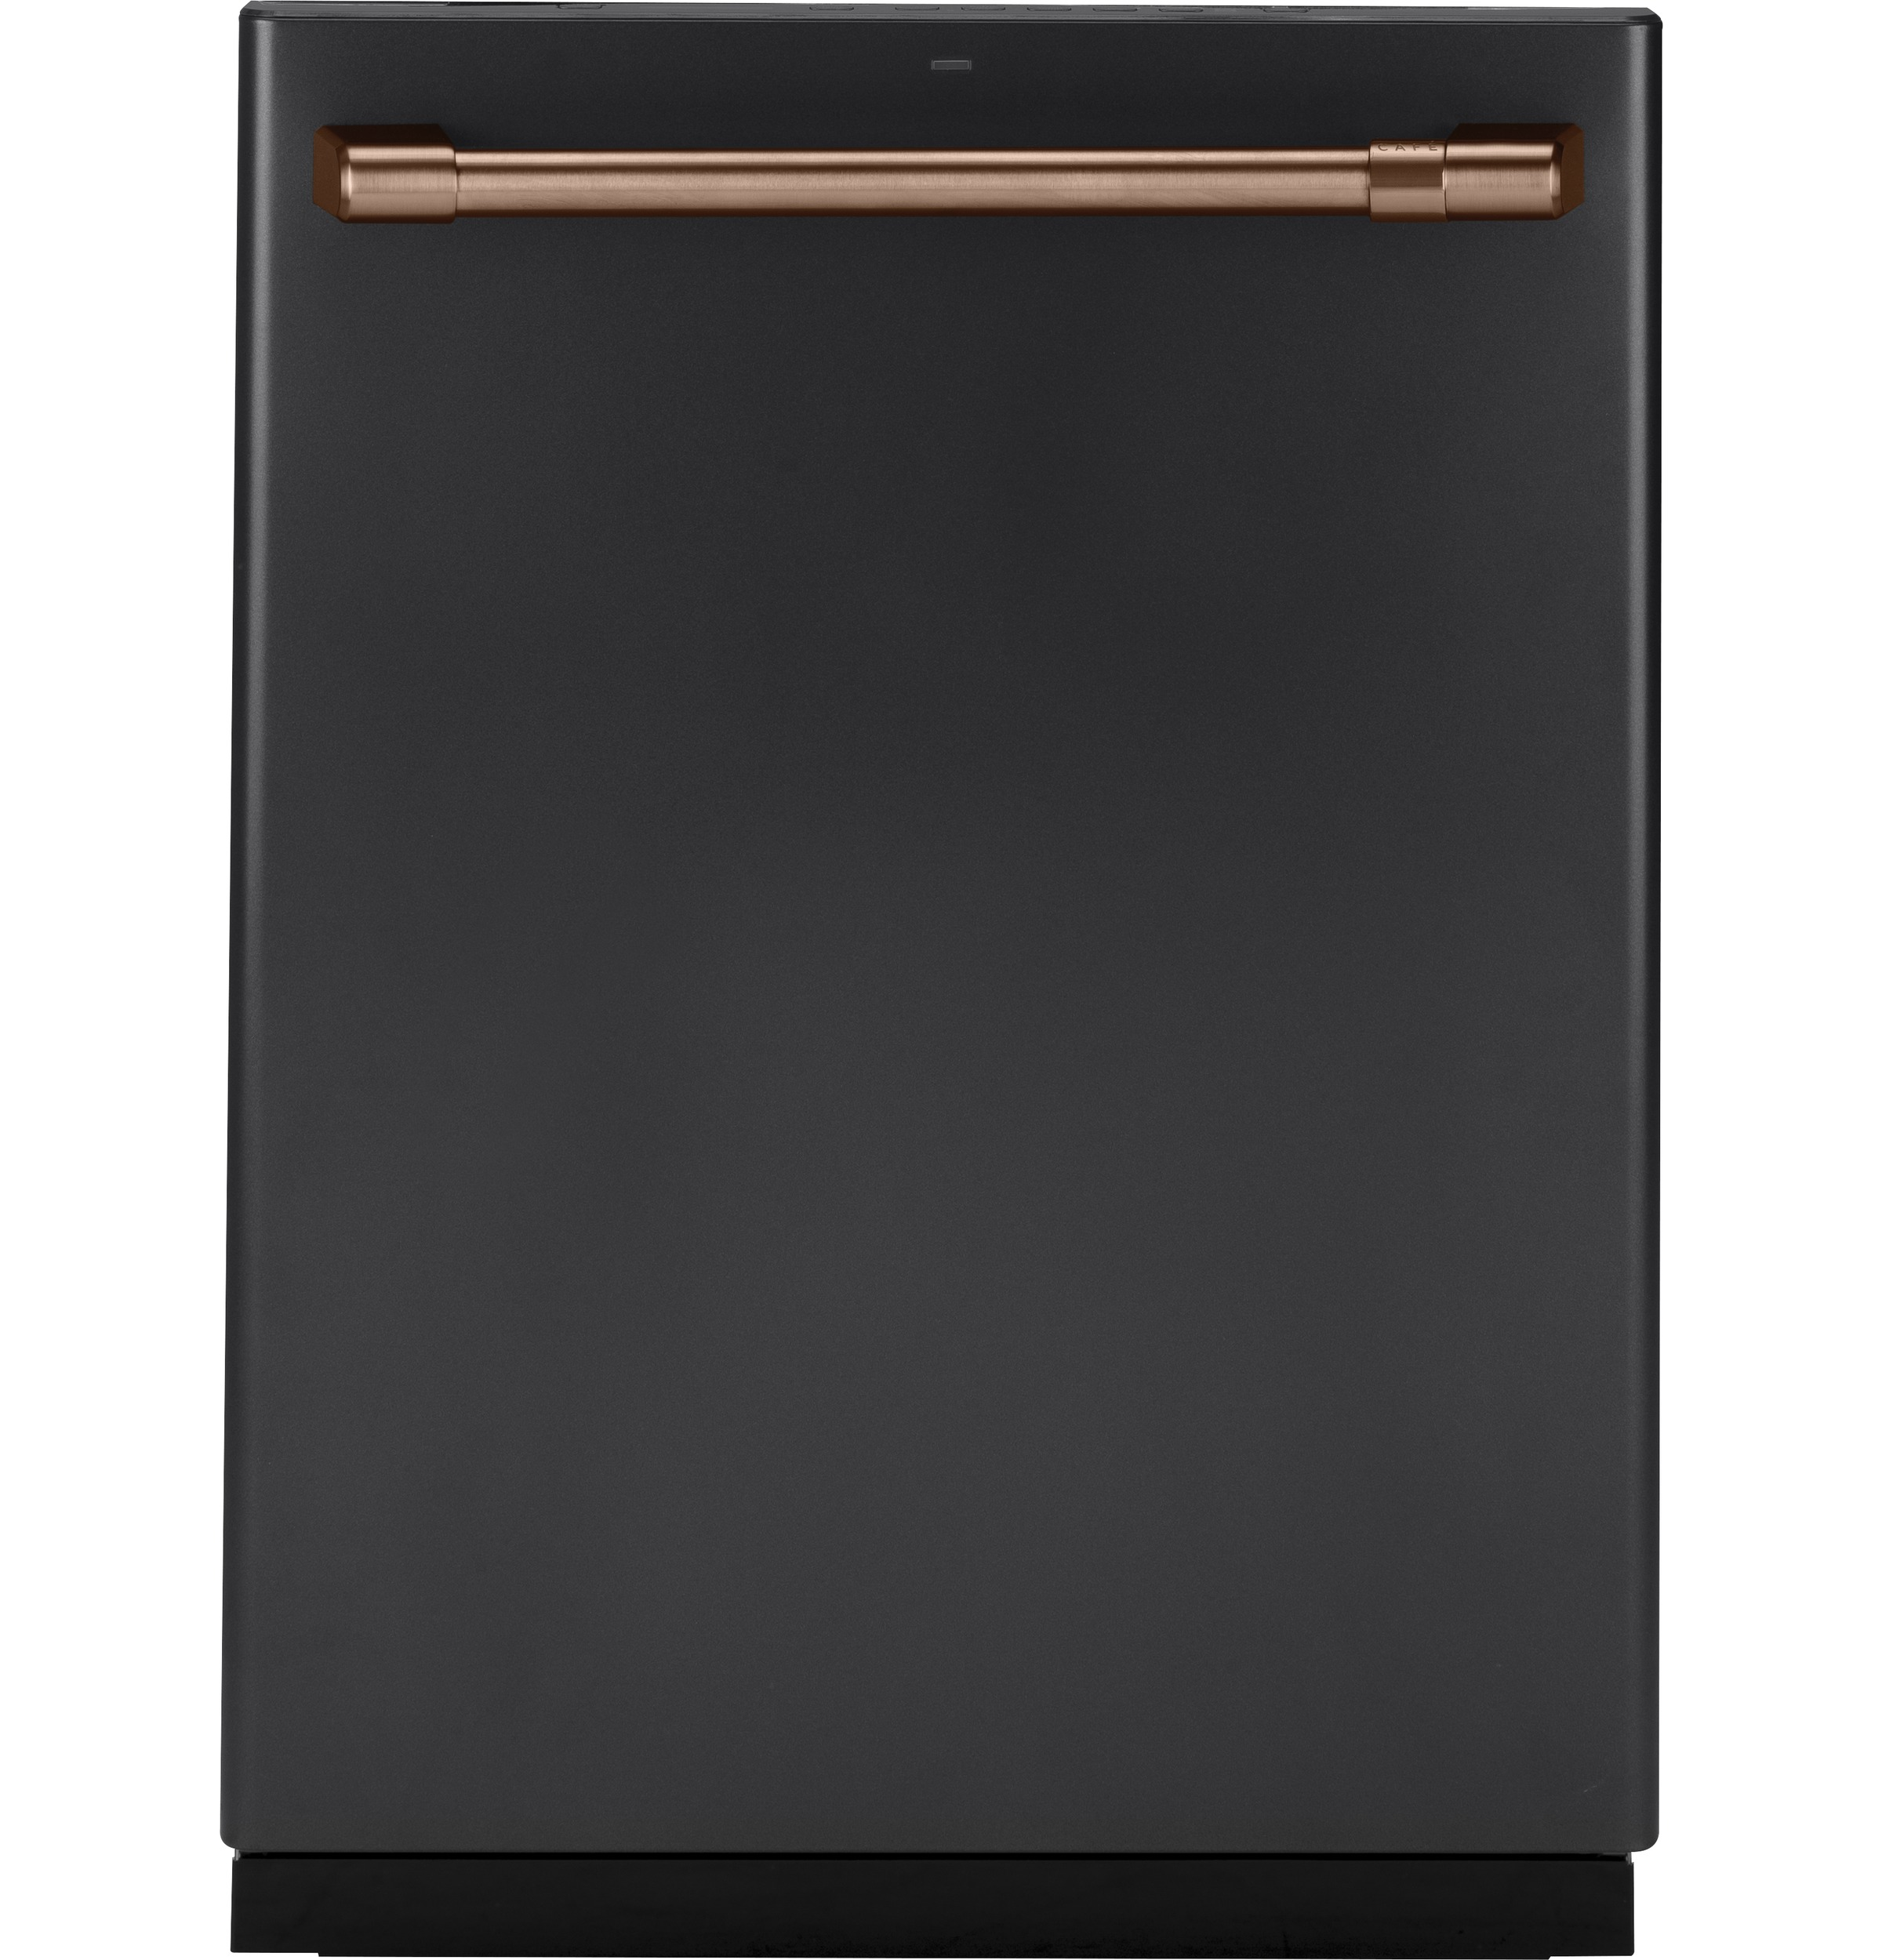 Model: CDT866P3MD1 | Café™ Stainless Interior Built-In Dishwasher with Hidden Controls